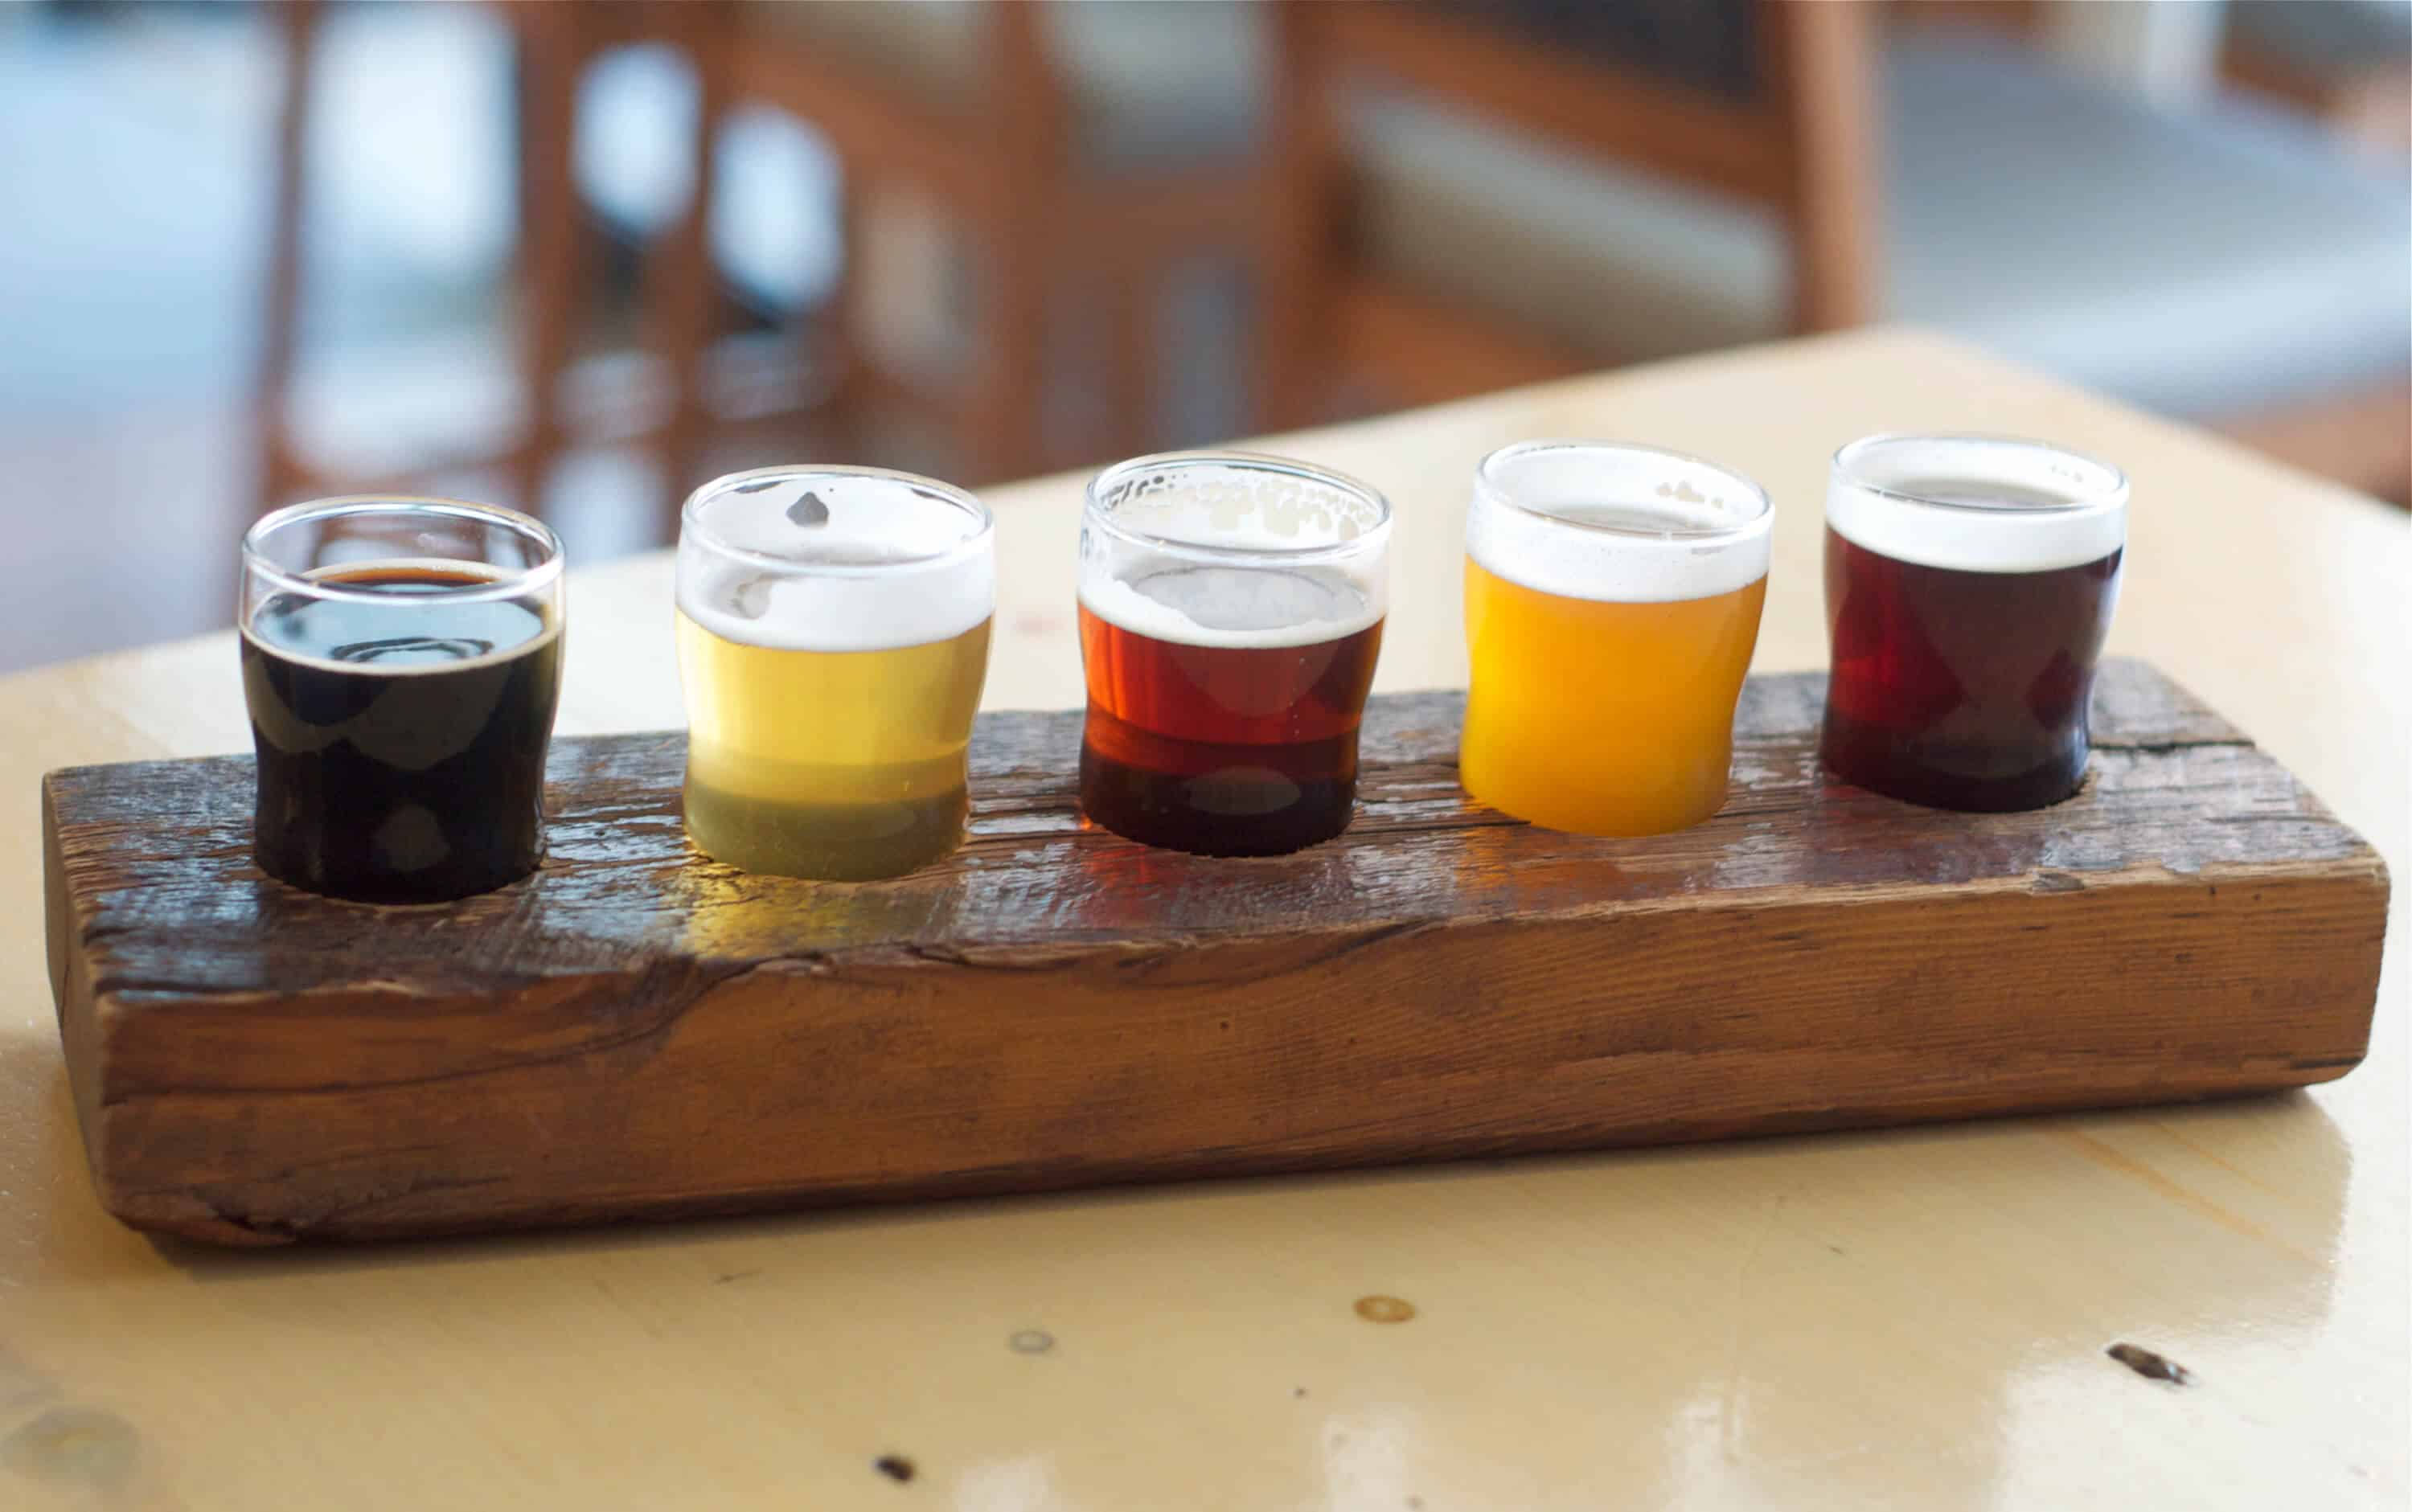 A flight of craft beer at Indie Alehouse